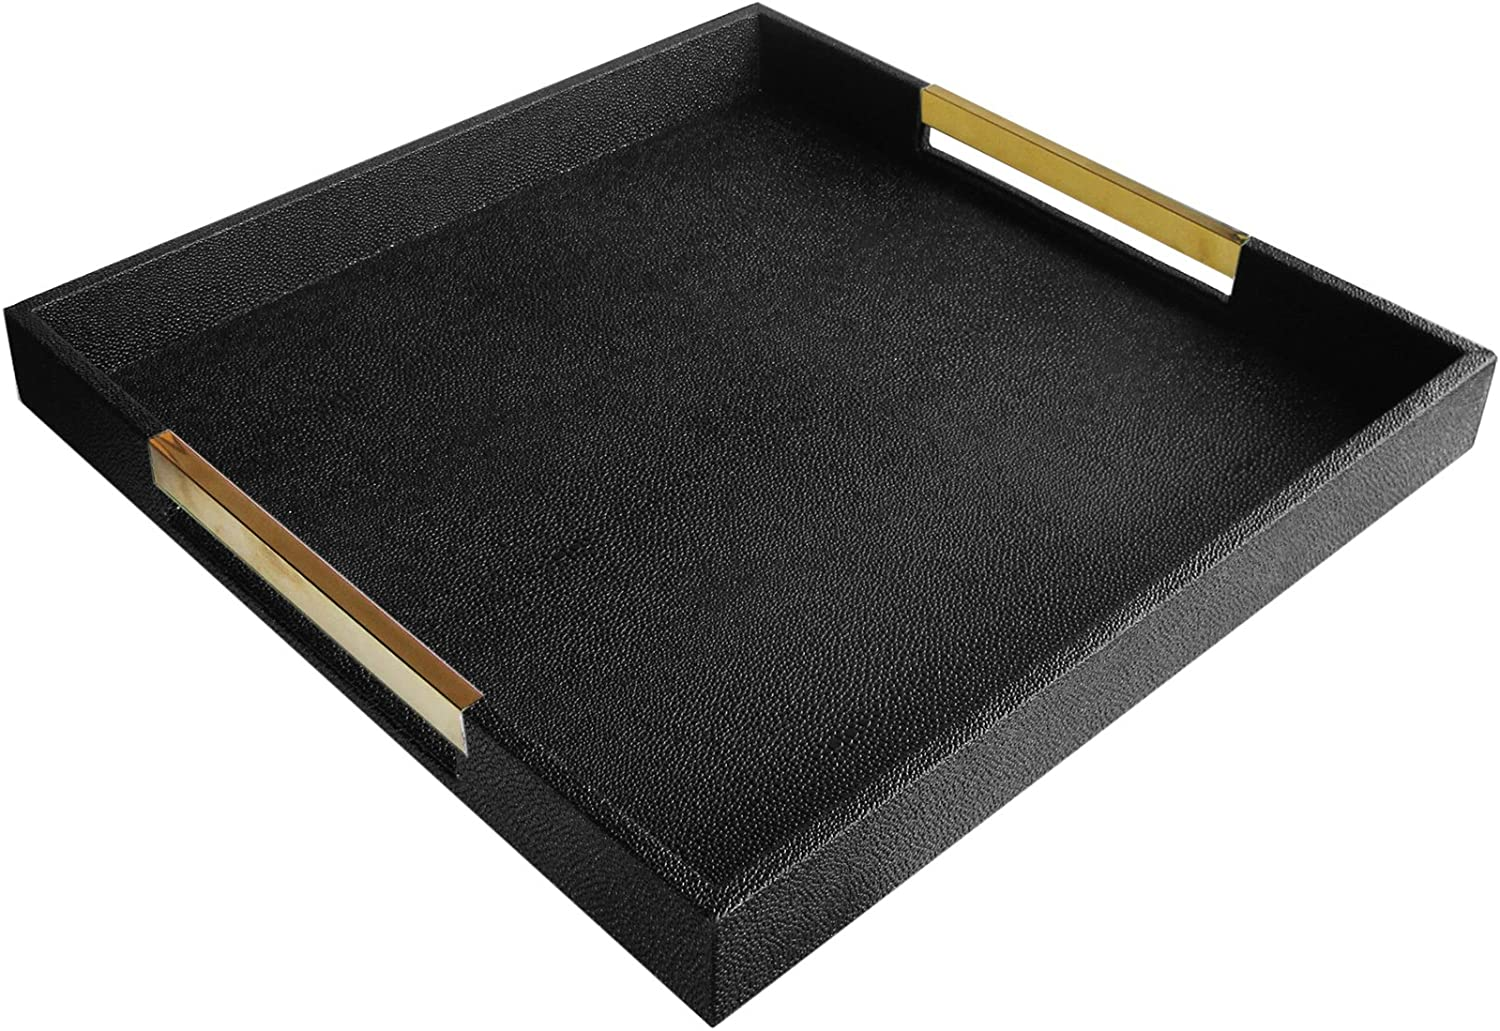 American Atelier Black Square Tray with Gold Handles